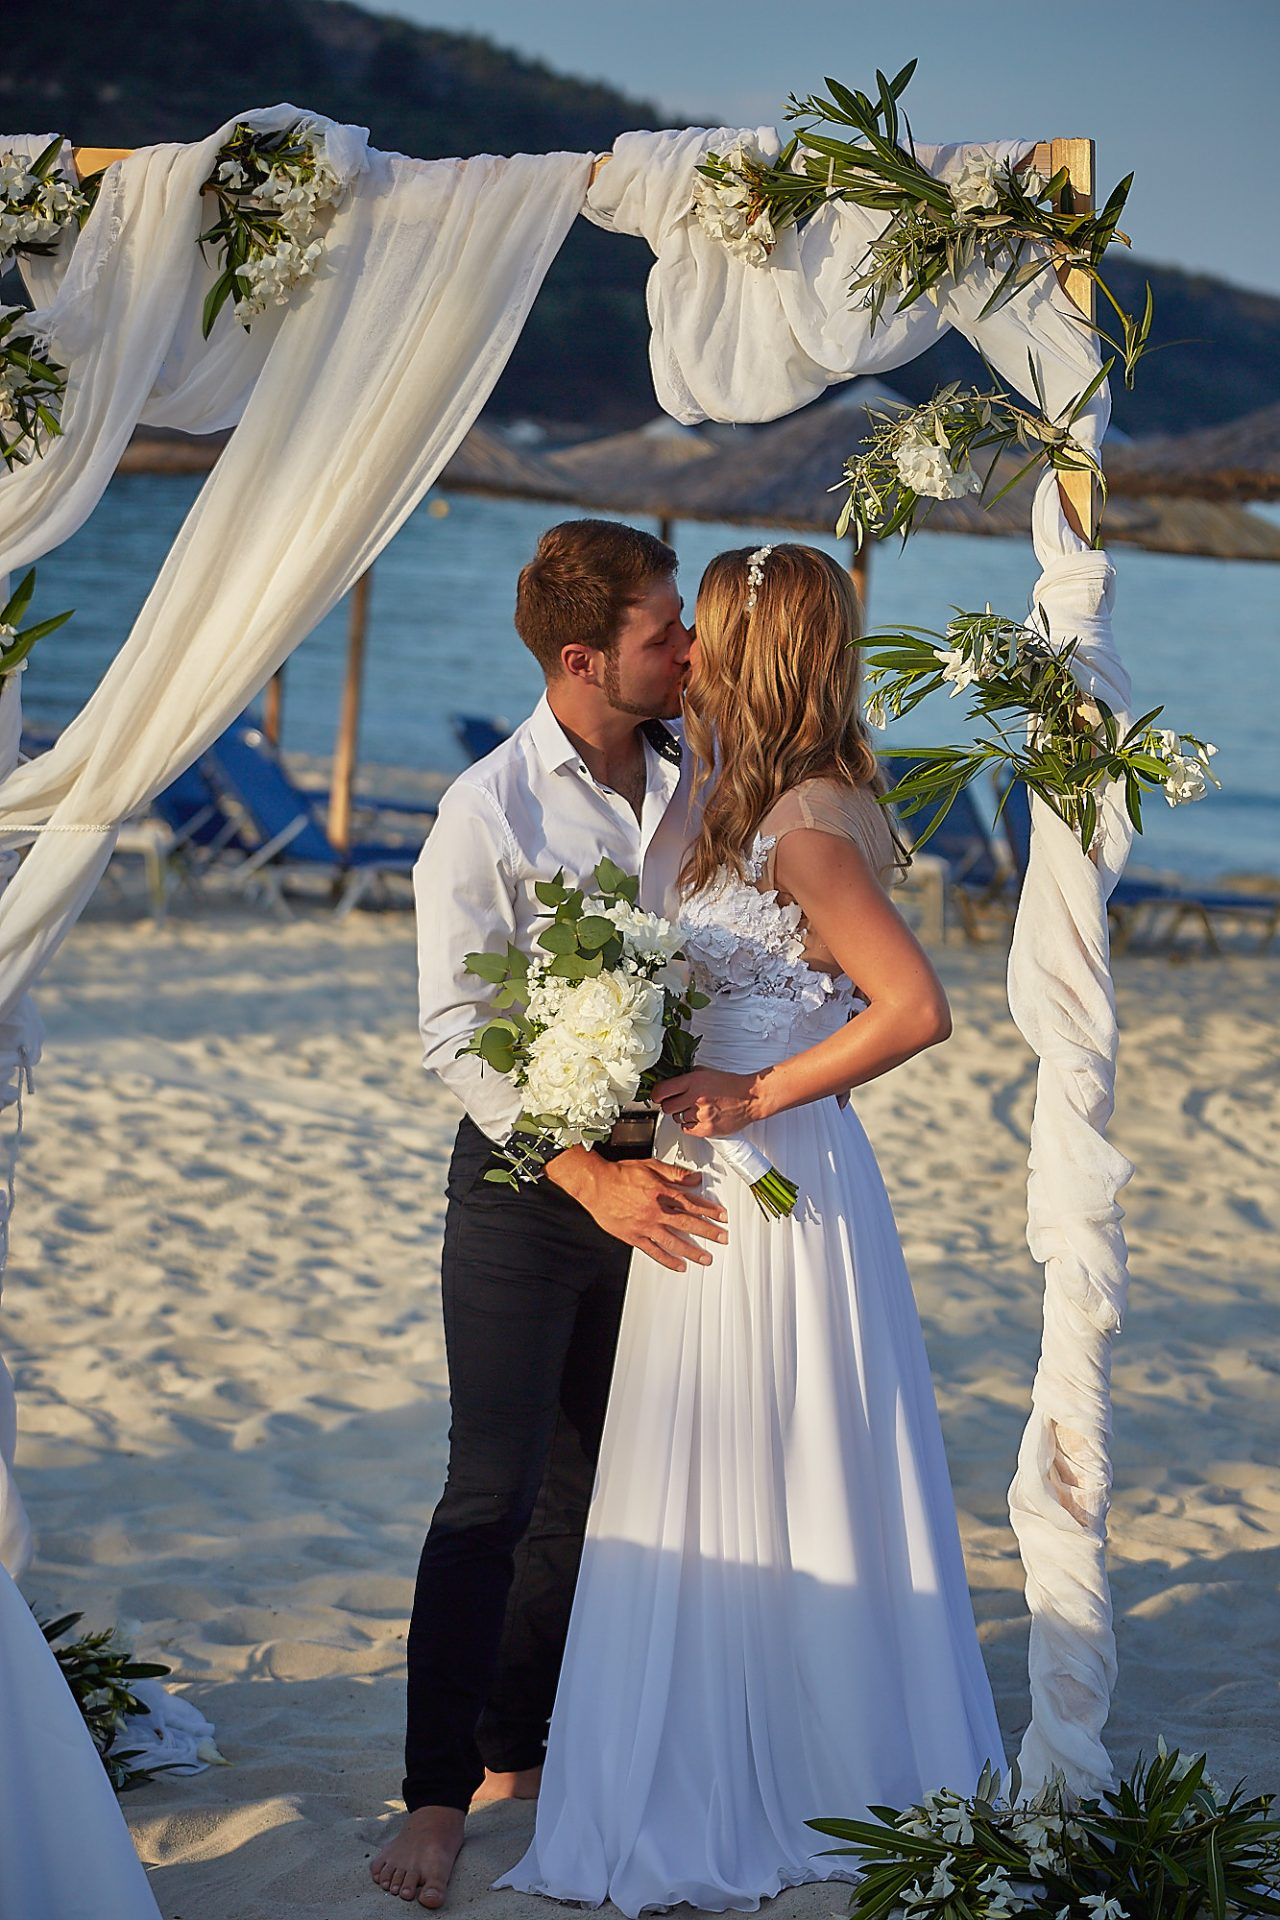 Thassos Golden kiss Beach Wedding on the beach wedding table and decor